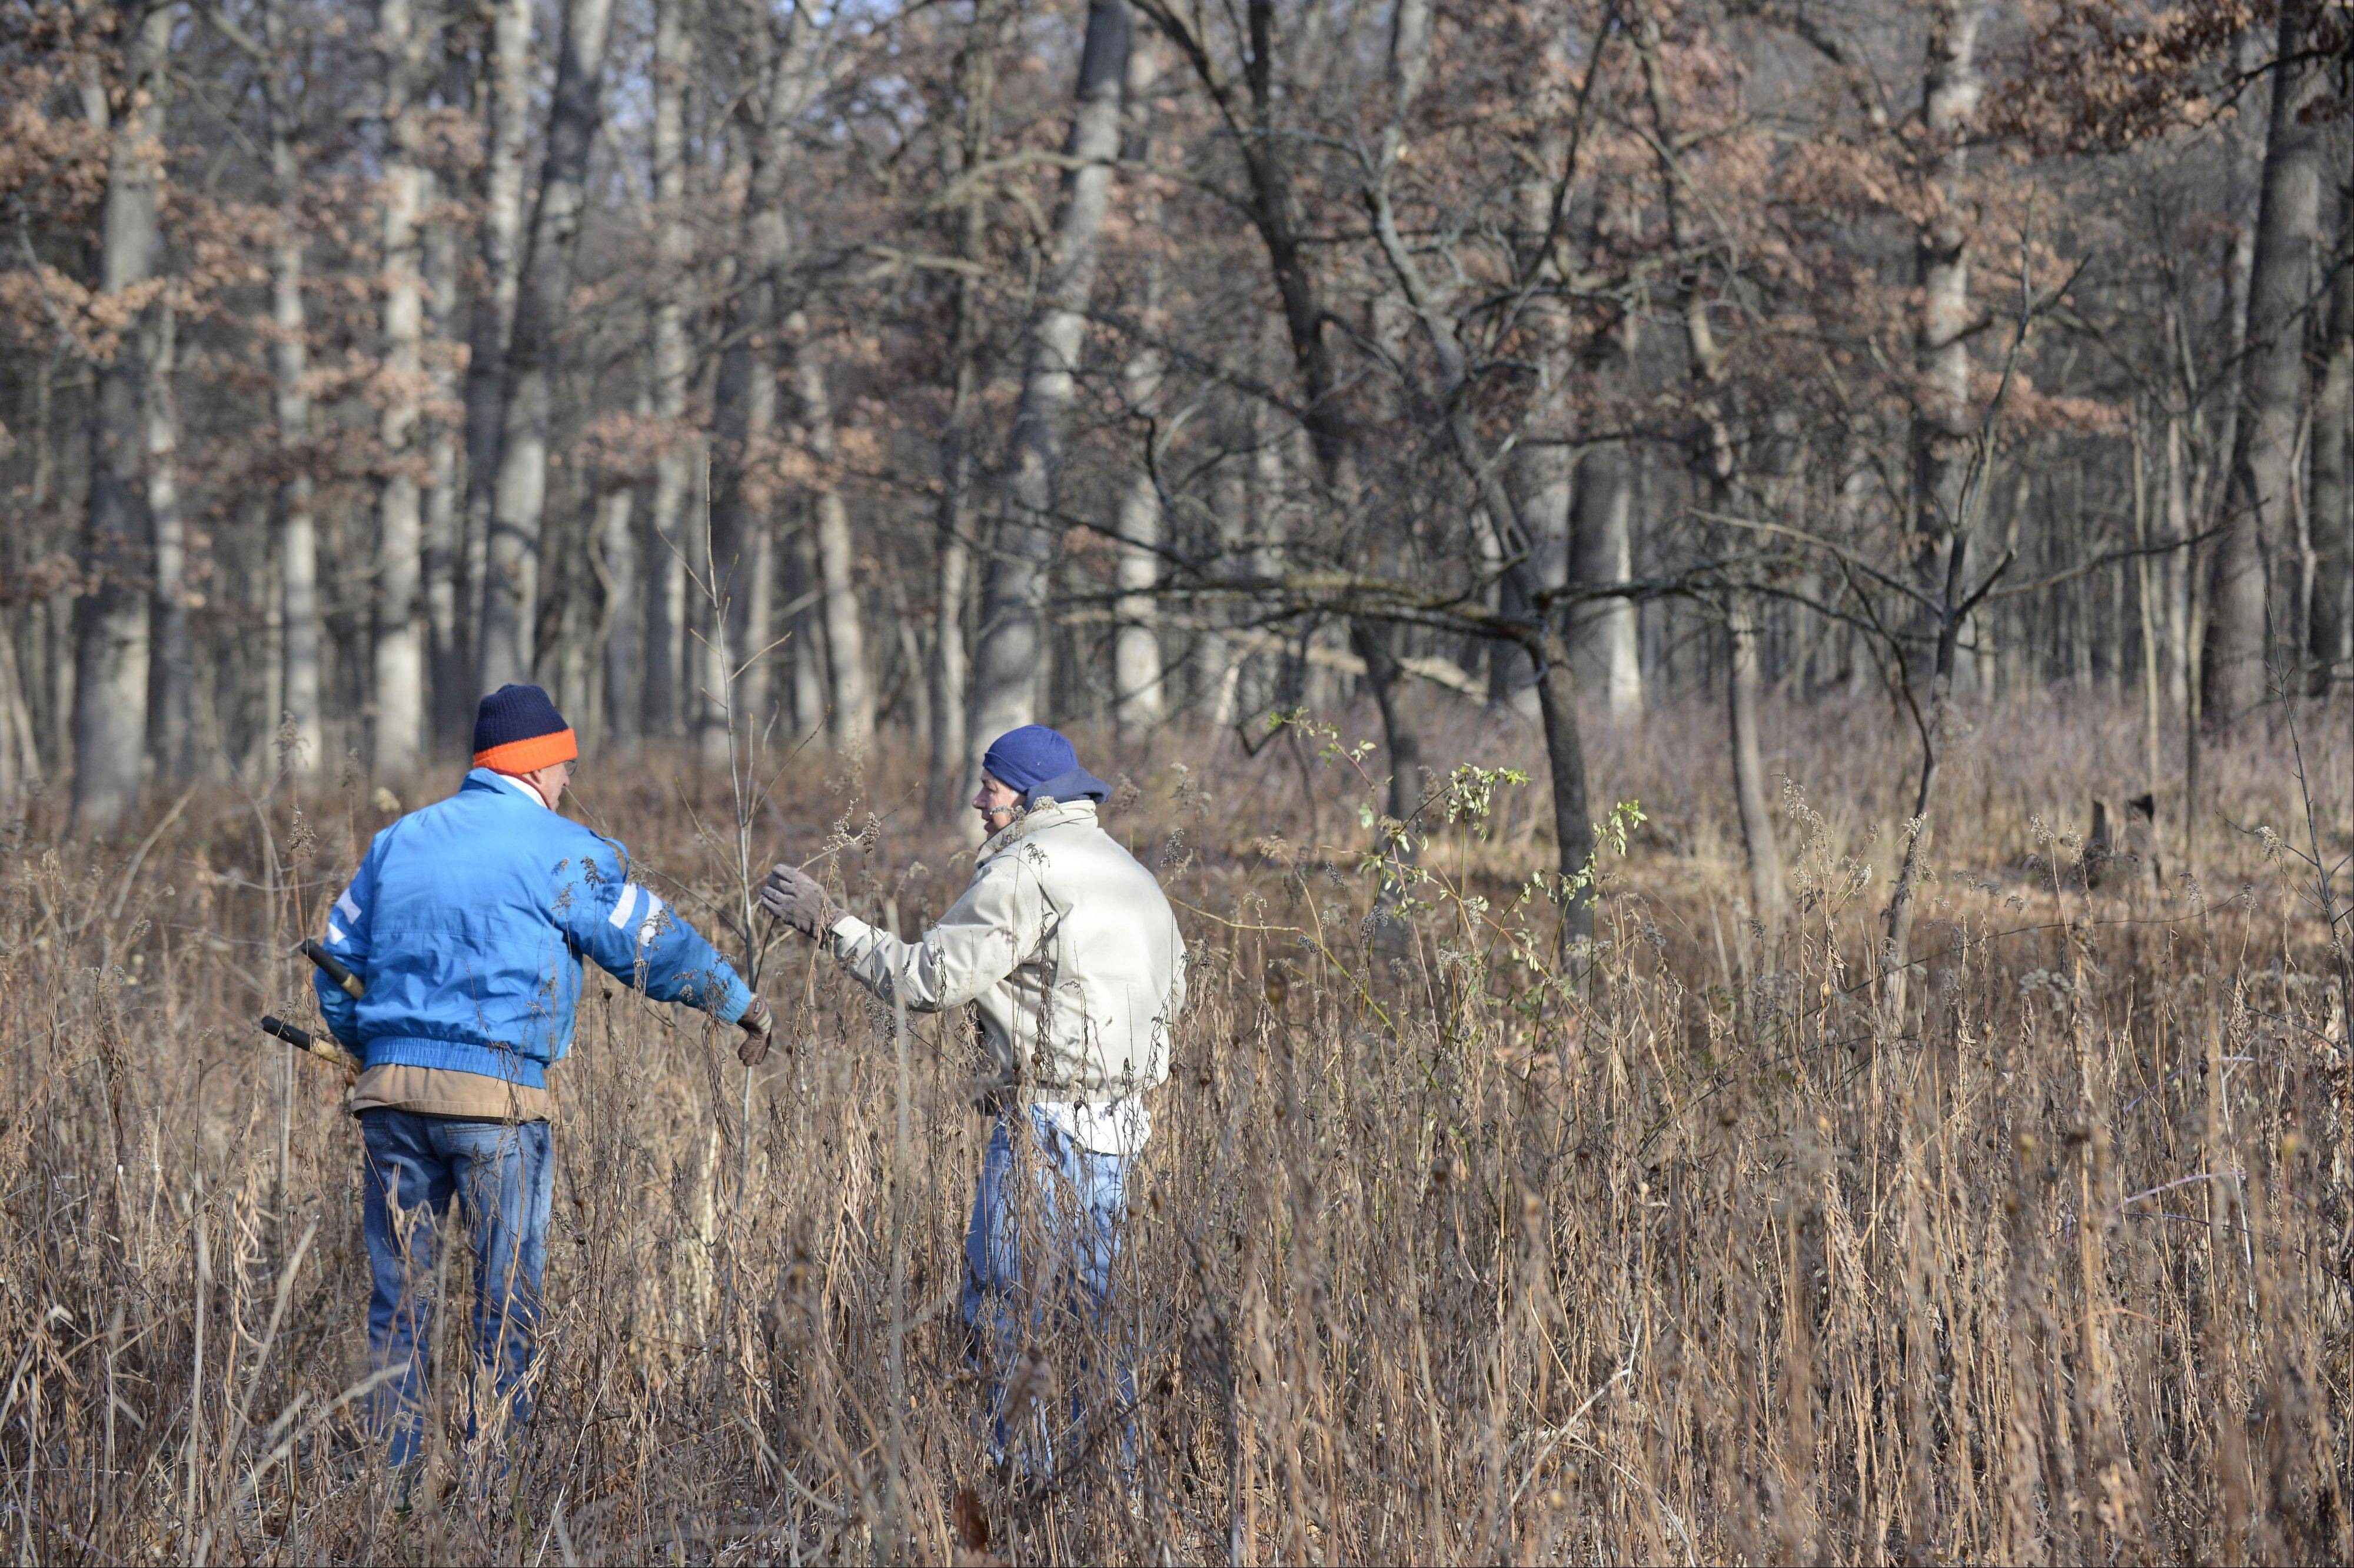 John Voelker, left, of Aurora and Tom Meitl of Geneva determine if a plant is an invasive species like buckthorn or honey suckle as they cut nonnative growth during a restoration workday Saturday at Bliss Woods Forest Preserve near Sugar Grove. Both have been volunteering at restoration days for about five years.